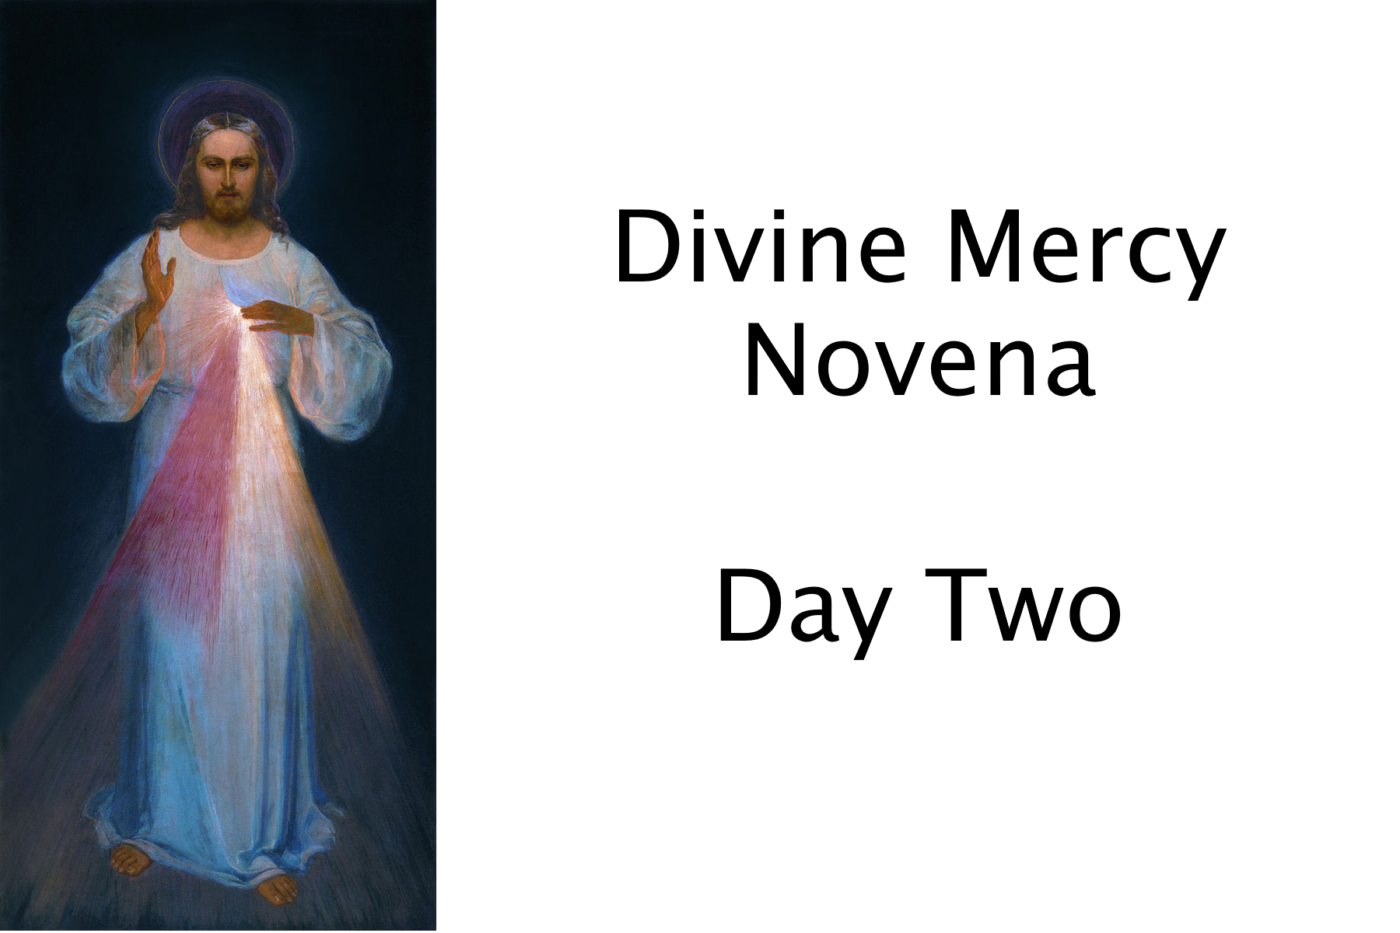 Divine Mercy Novena Day Two